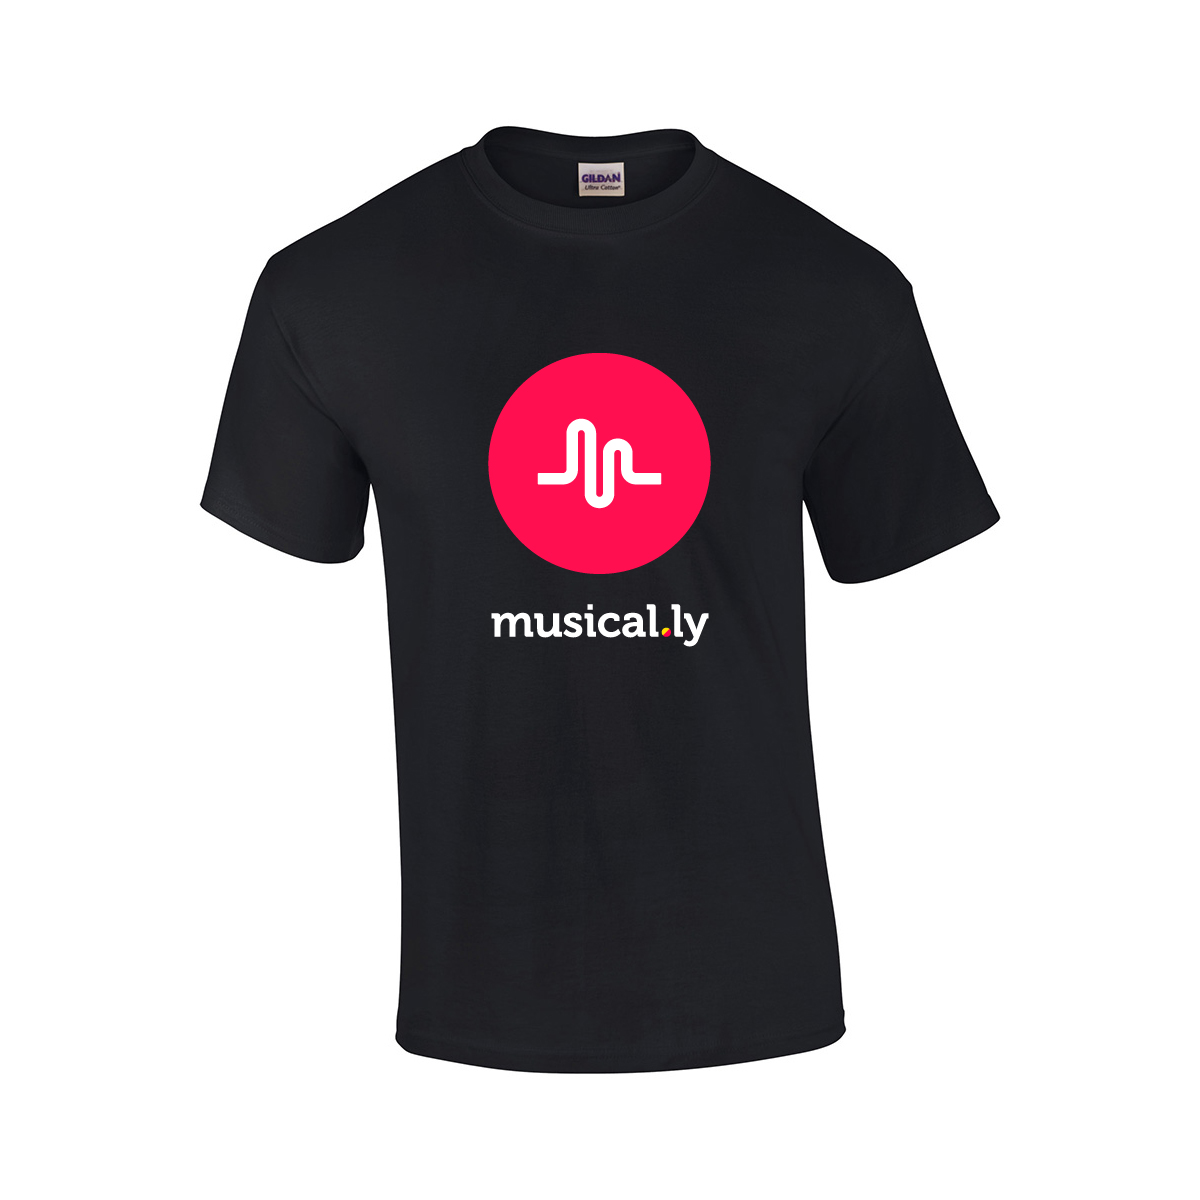 musically PRE-ORDER musical.ly logo shirt T-Shirt black